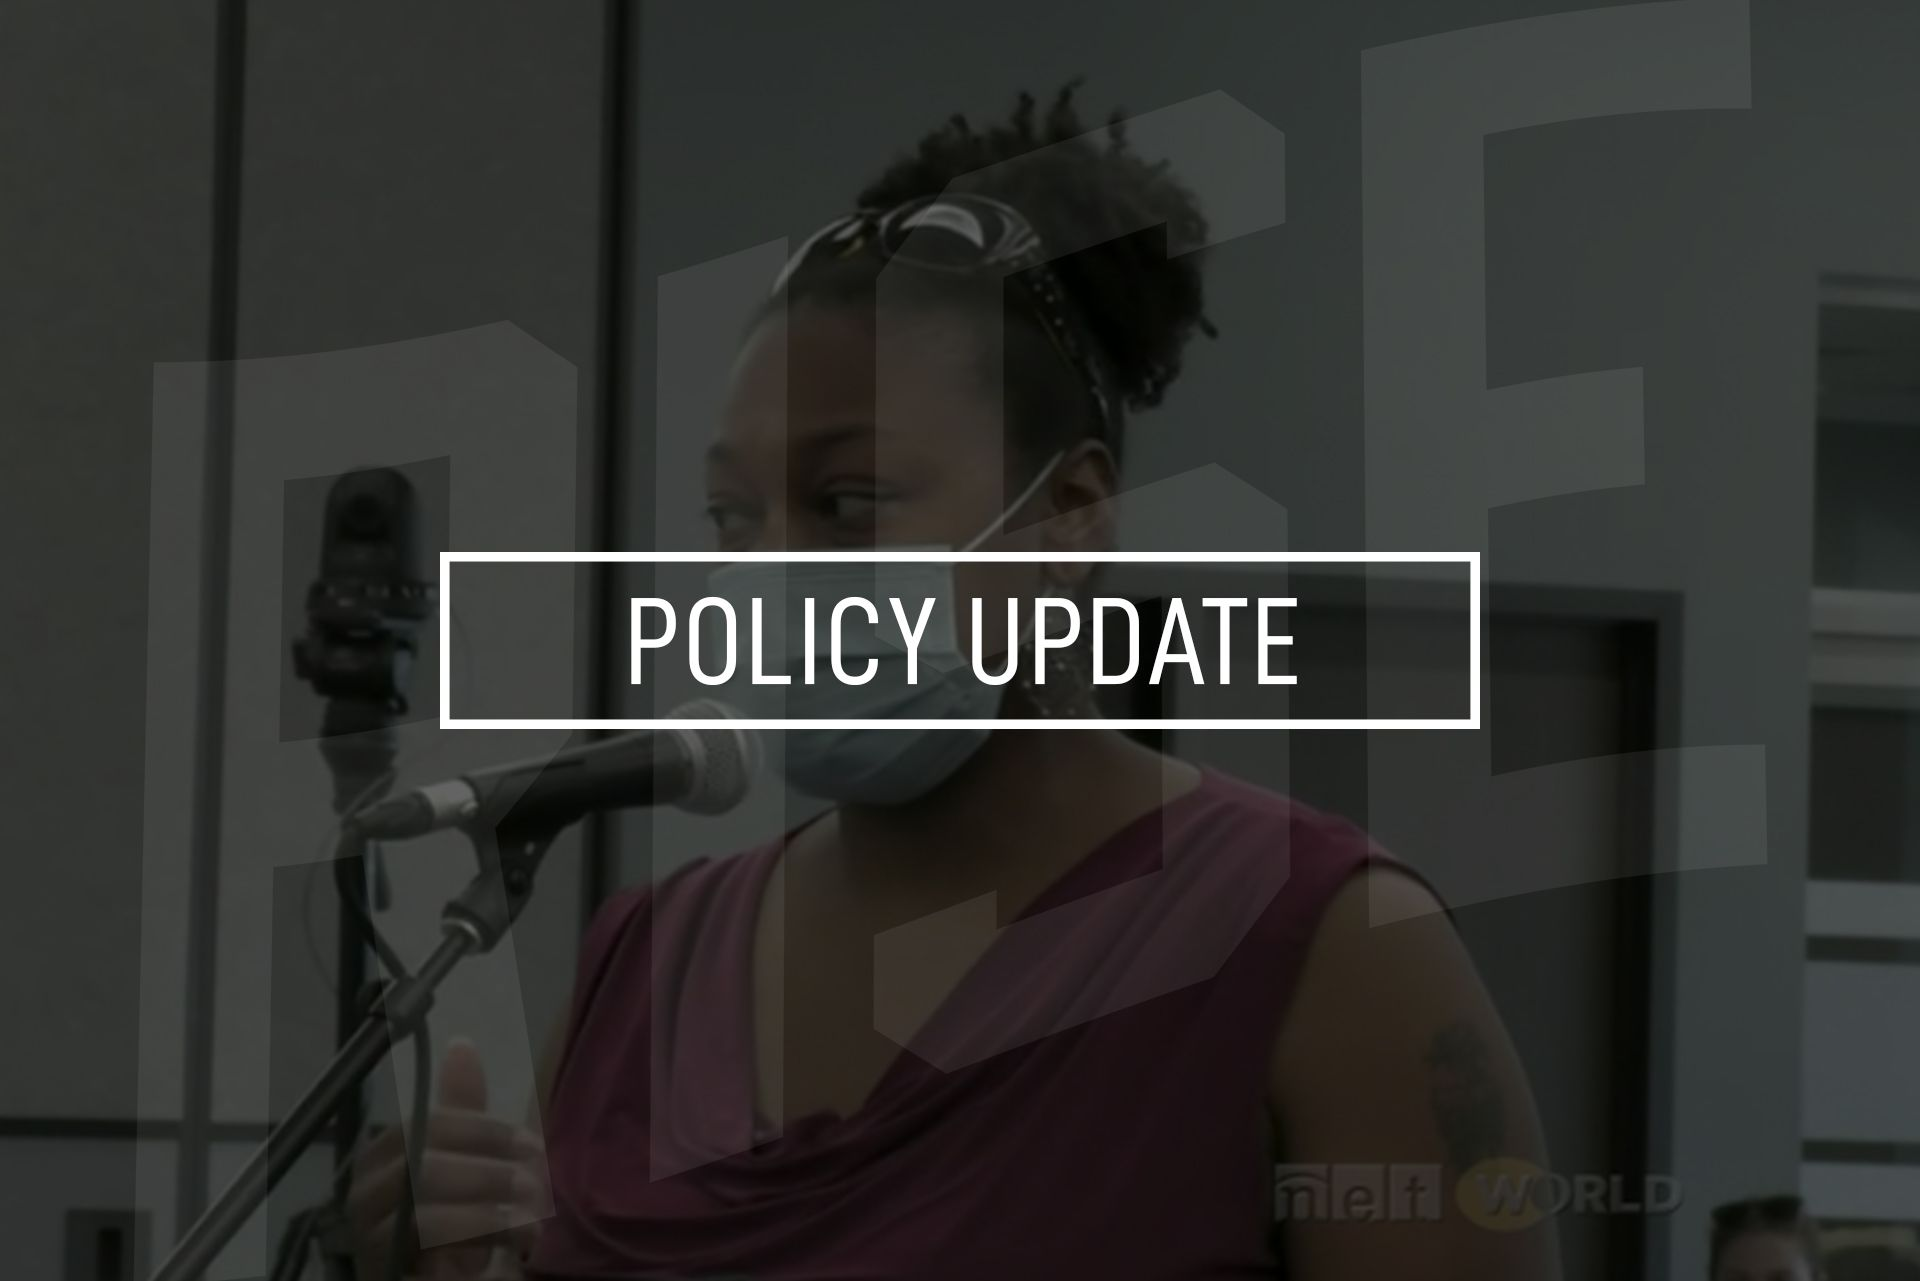 RISE's 2nd Quarter Advocacy & Policy Update